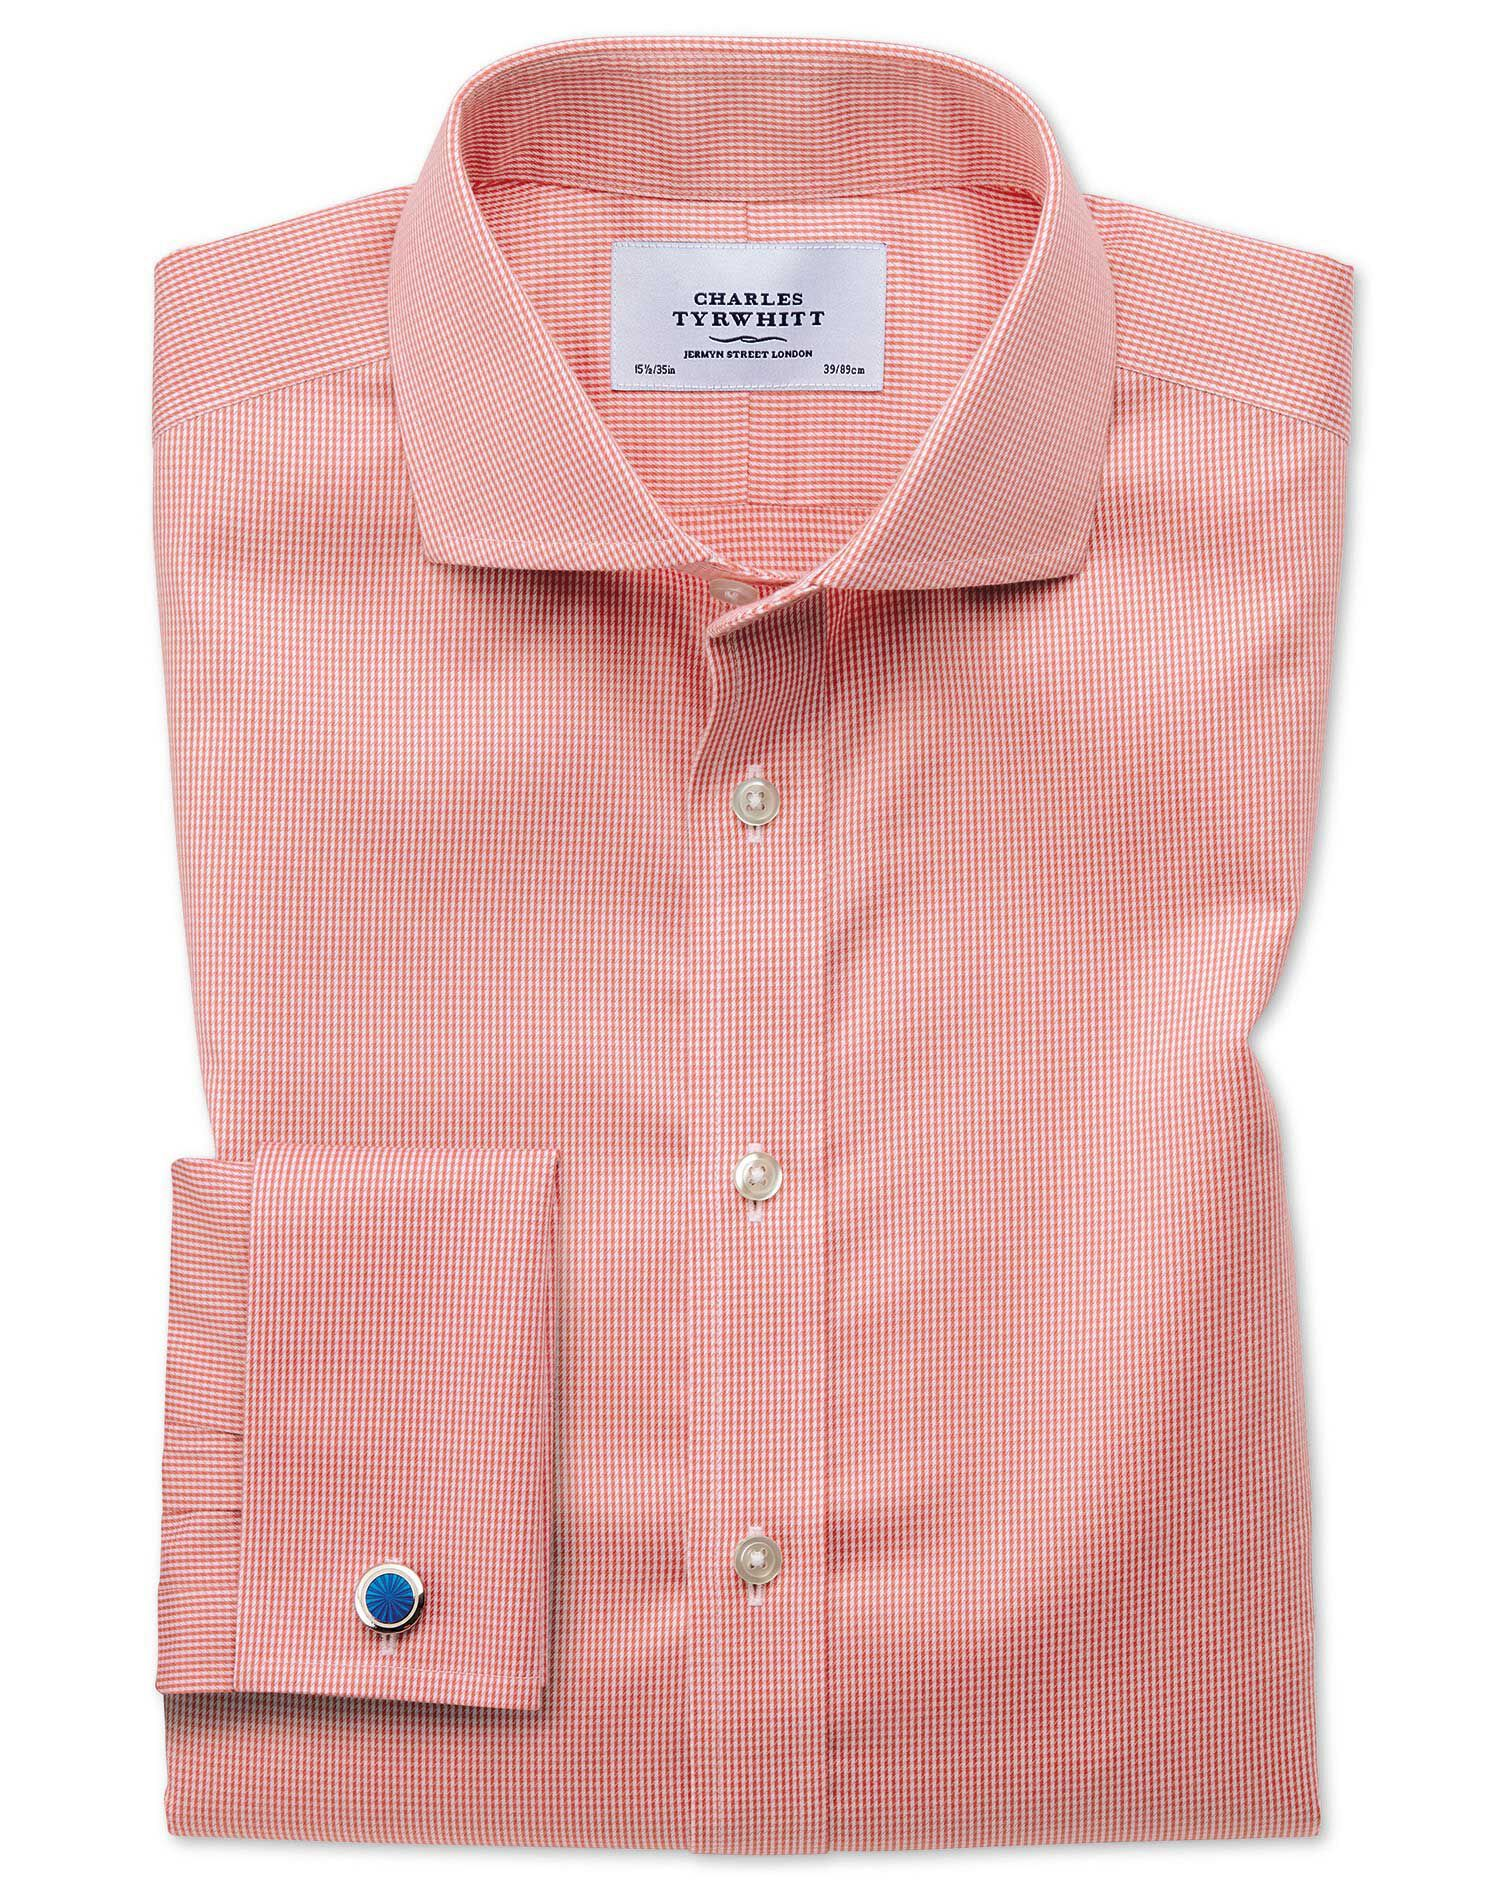 Slim Fit Cutaway Non-Iron Puppytooth Coral Cotton Formal Shirt Double Cuff Size 17.5/34 by Charles T